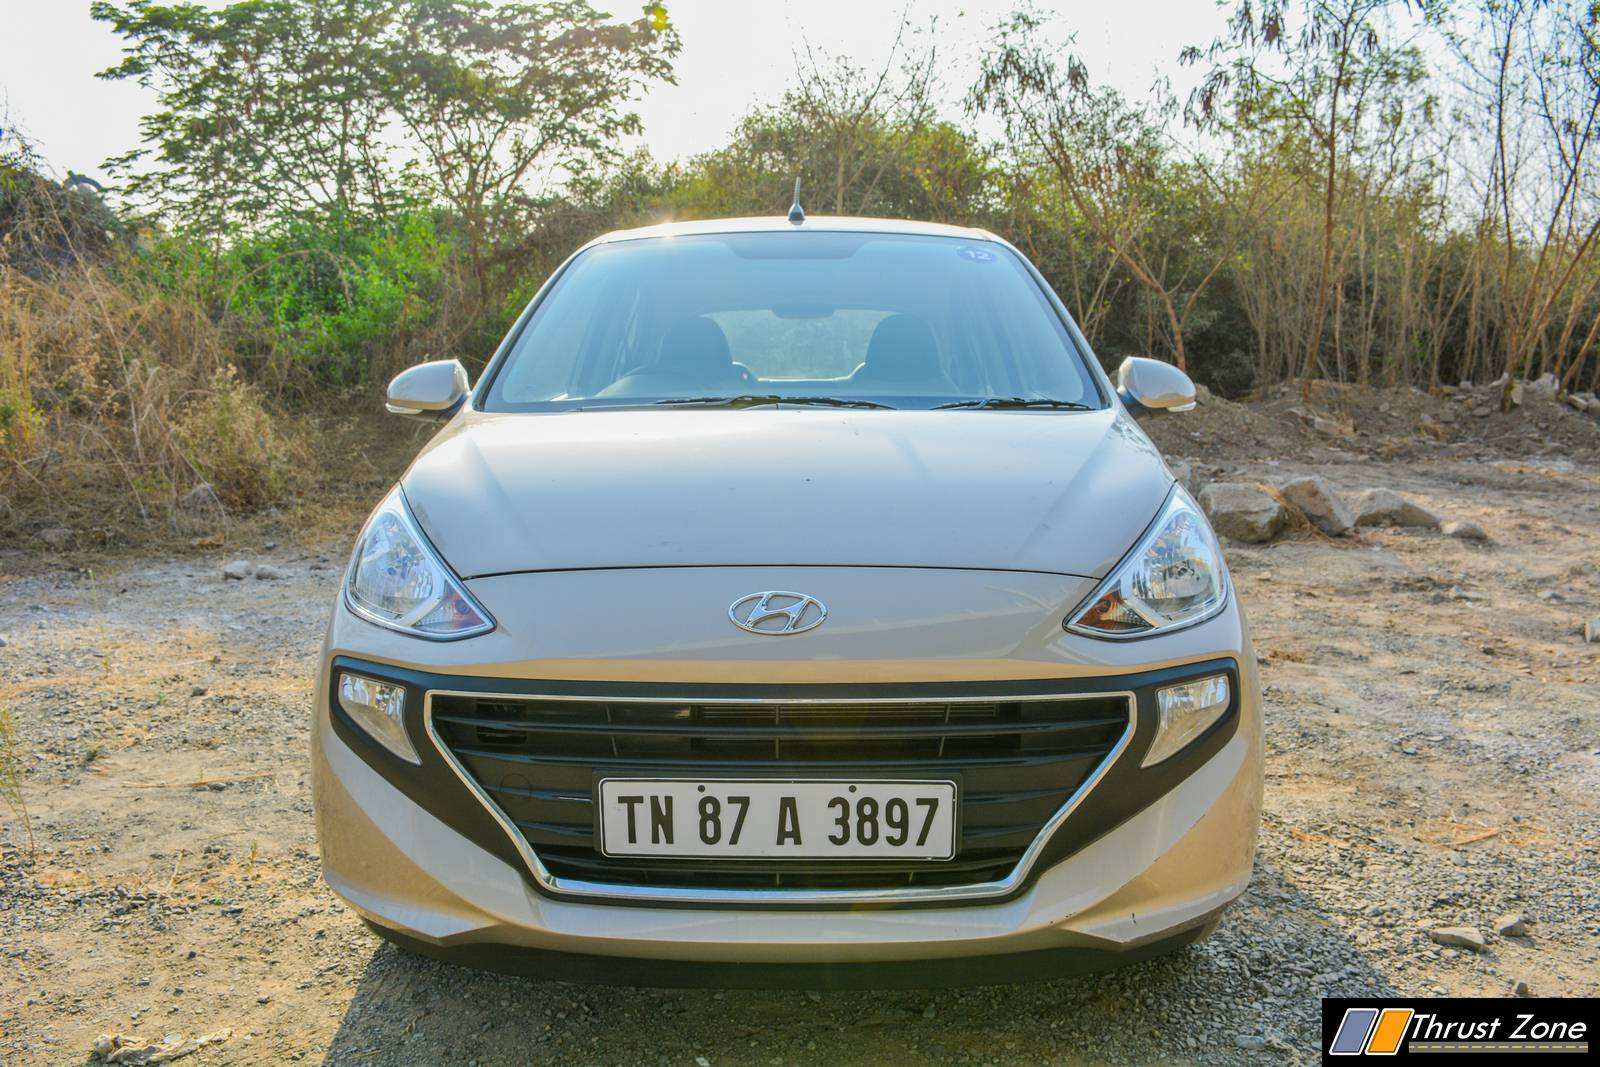 https://www.thrustzone.com/wp-content/uploads/2019/04/2019-Hyundai-Santro-petrol-manual-review-12.jpg